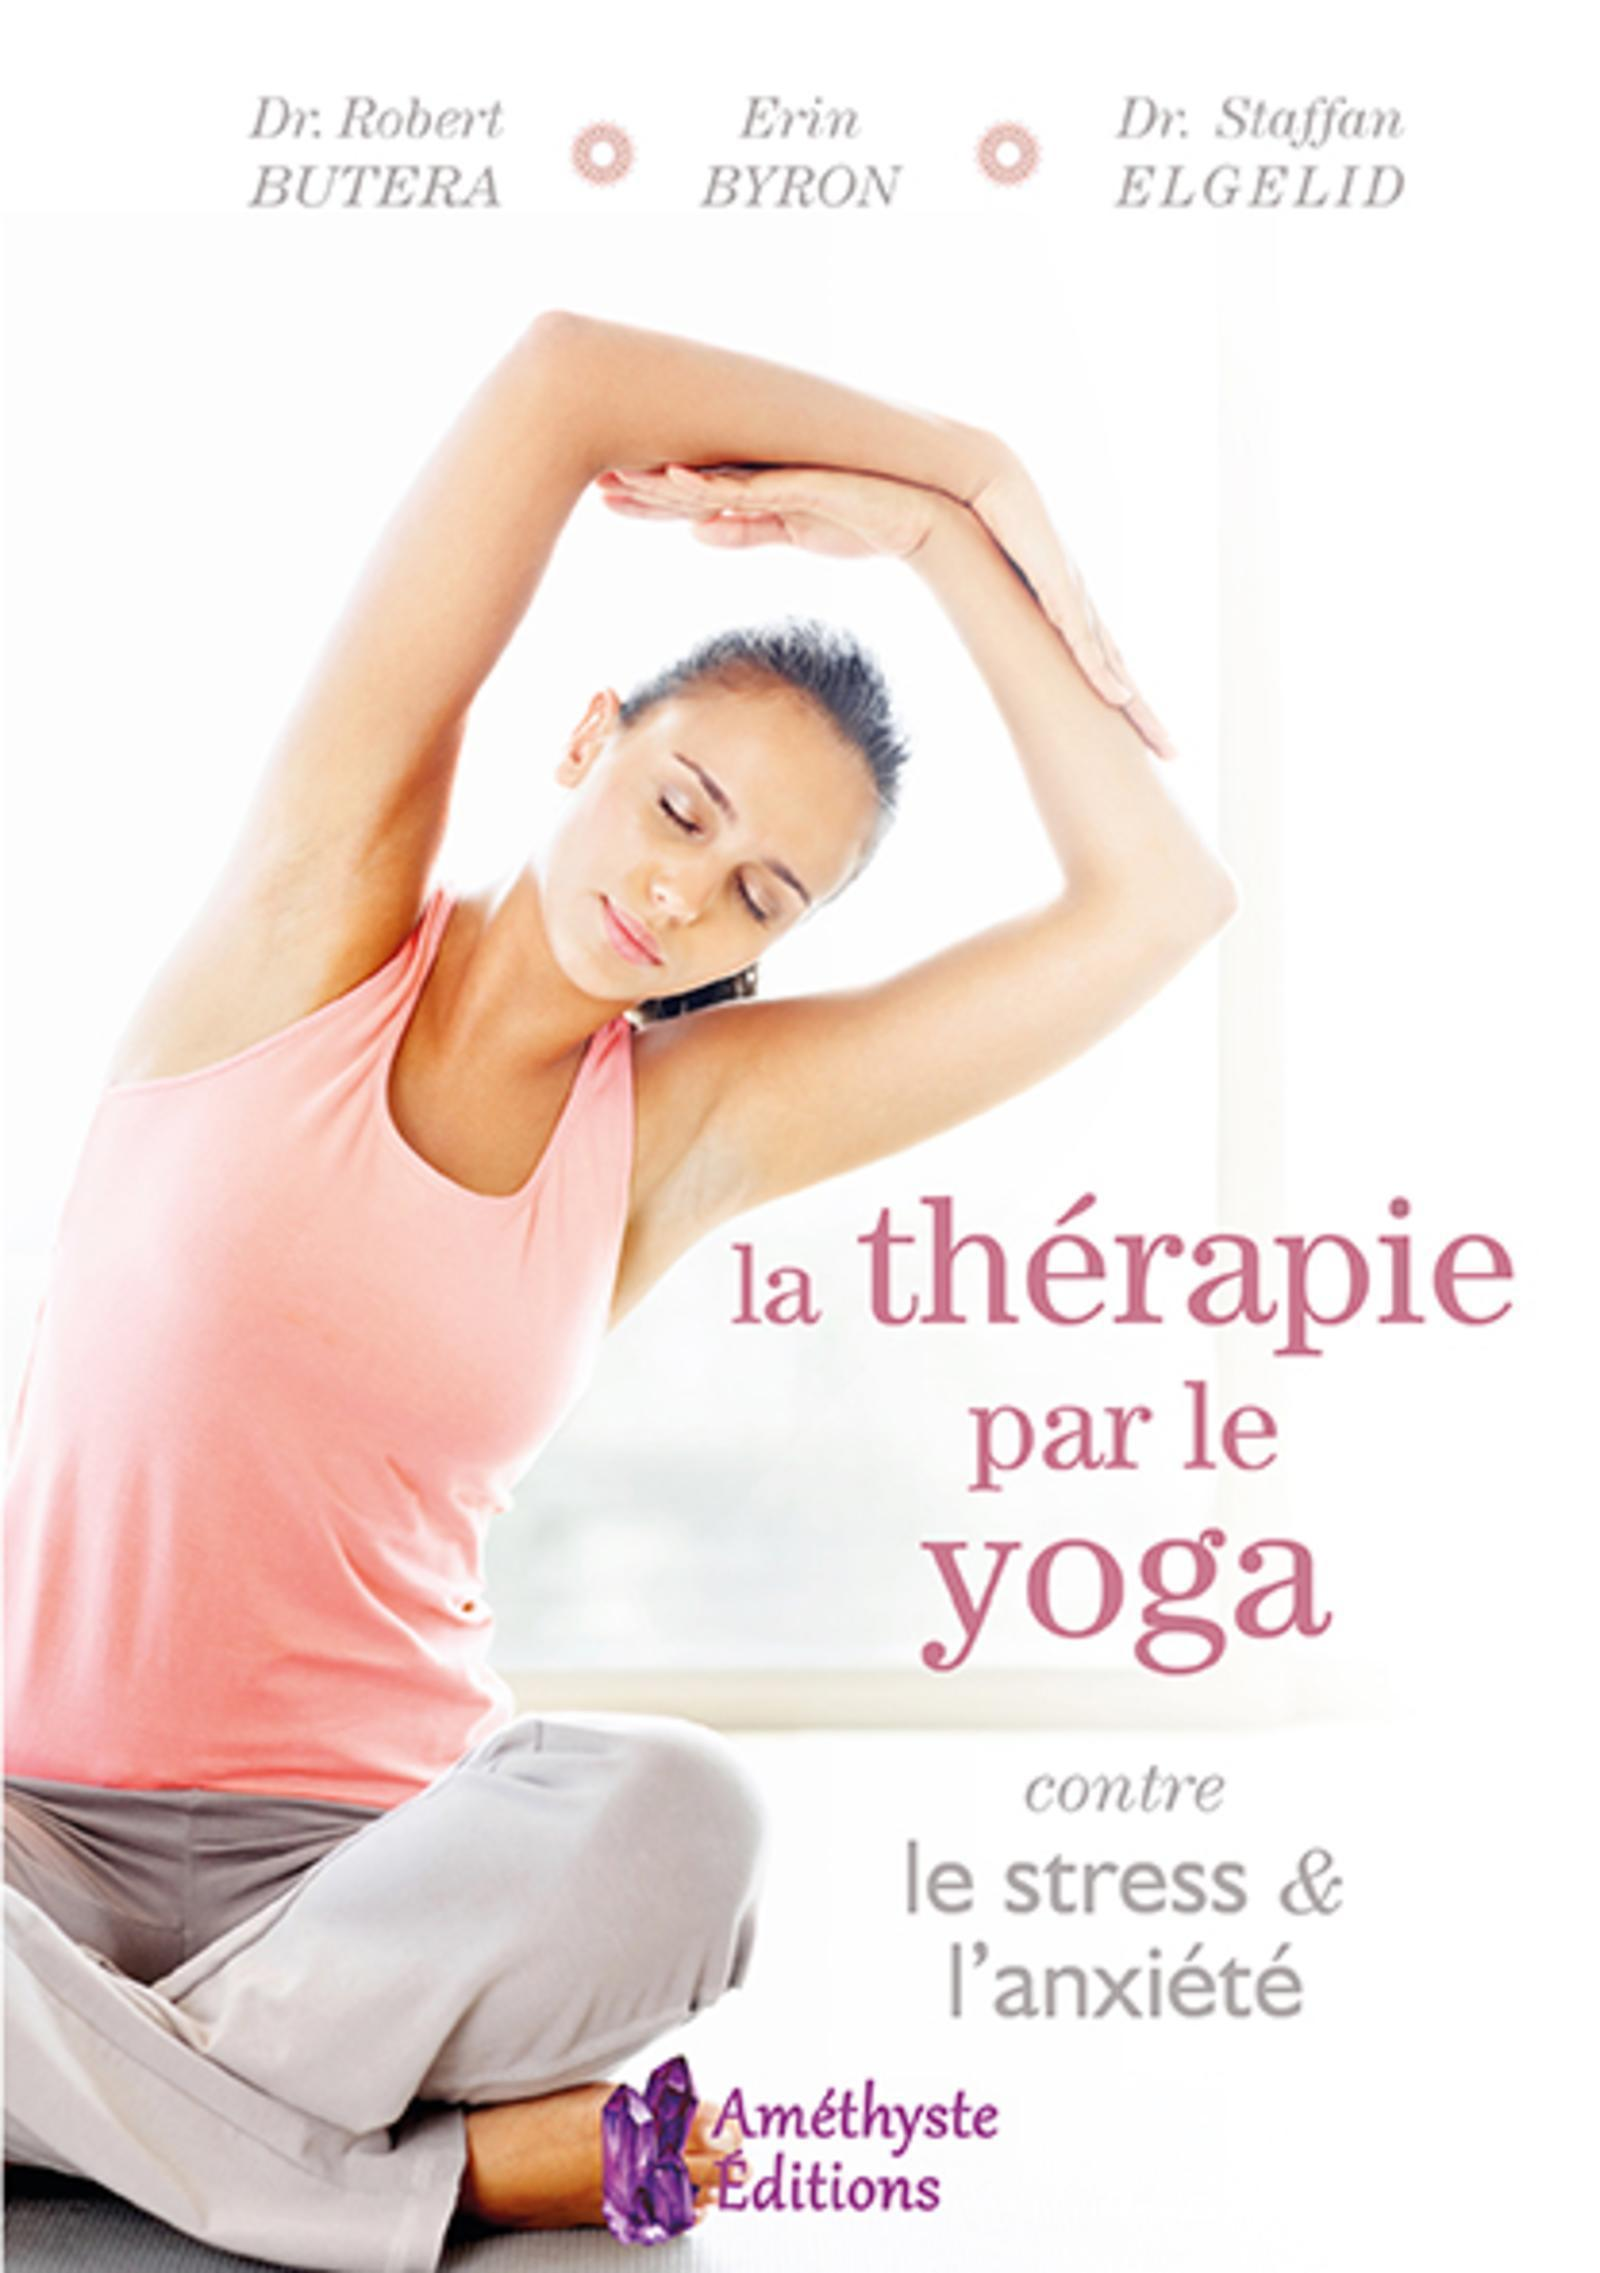 LA THERAPIE PAR LE YOGA CONTRE LE STRESS ET L'ANXIETE